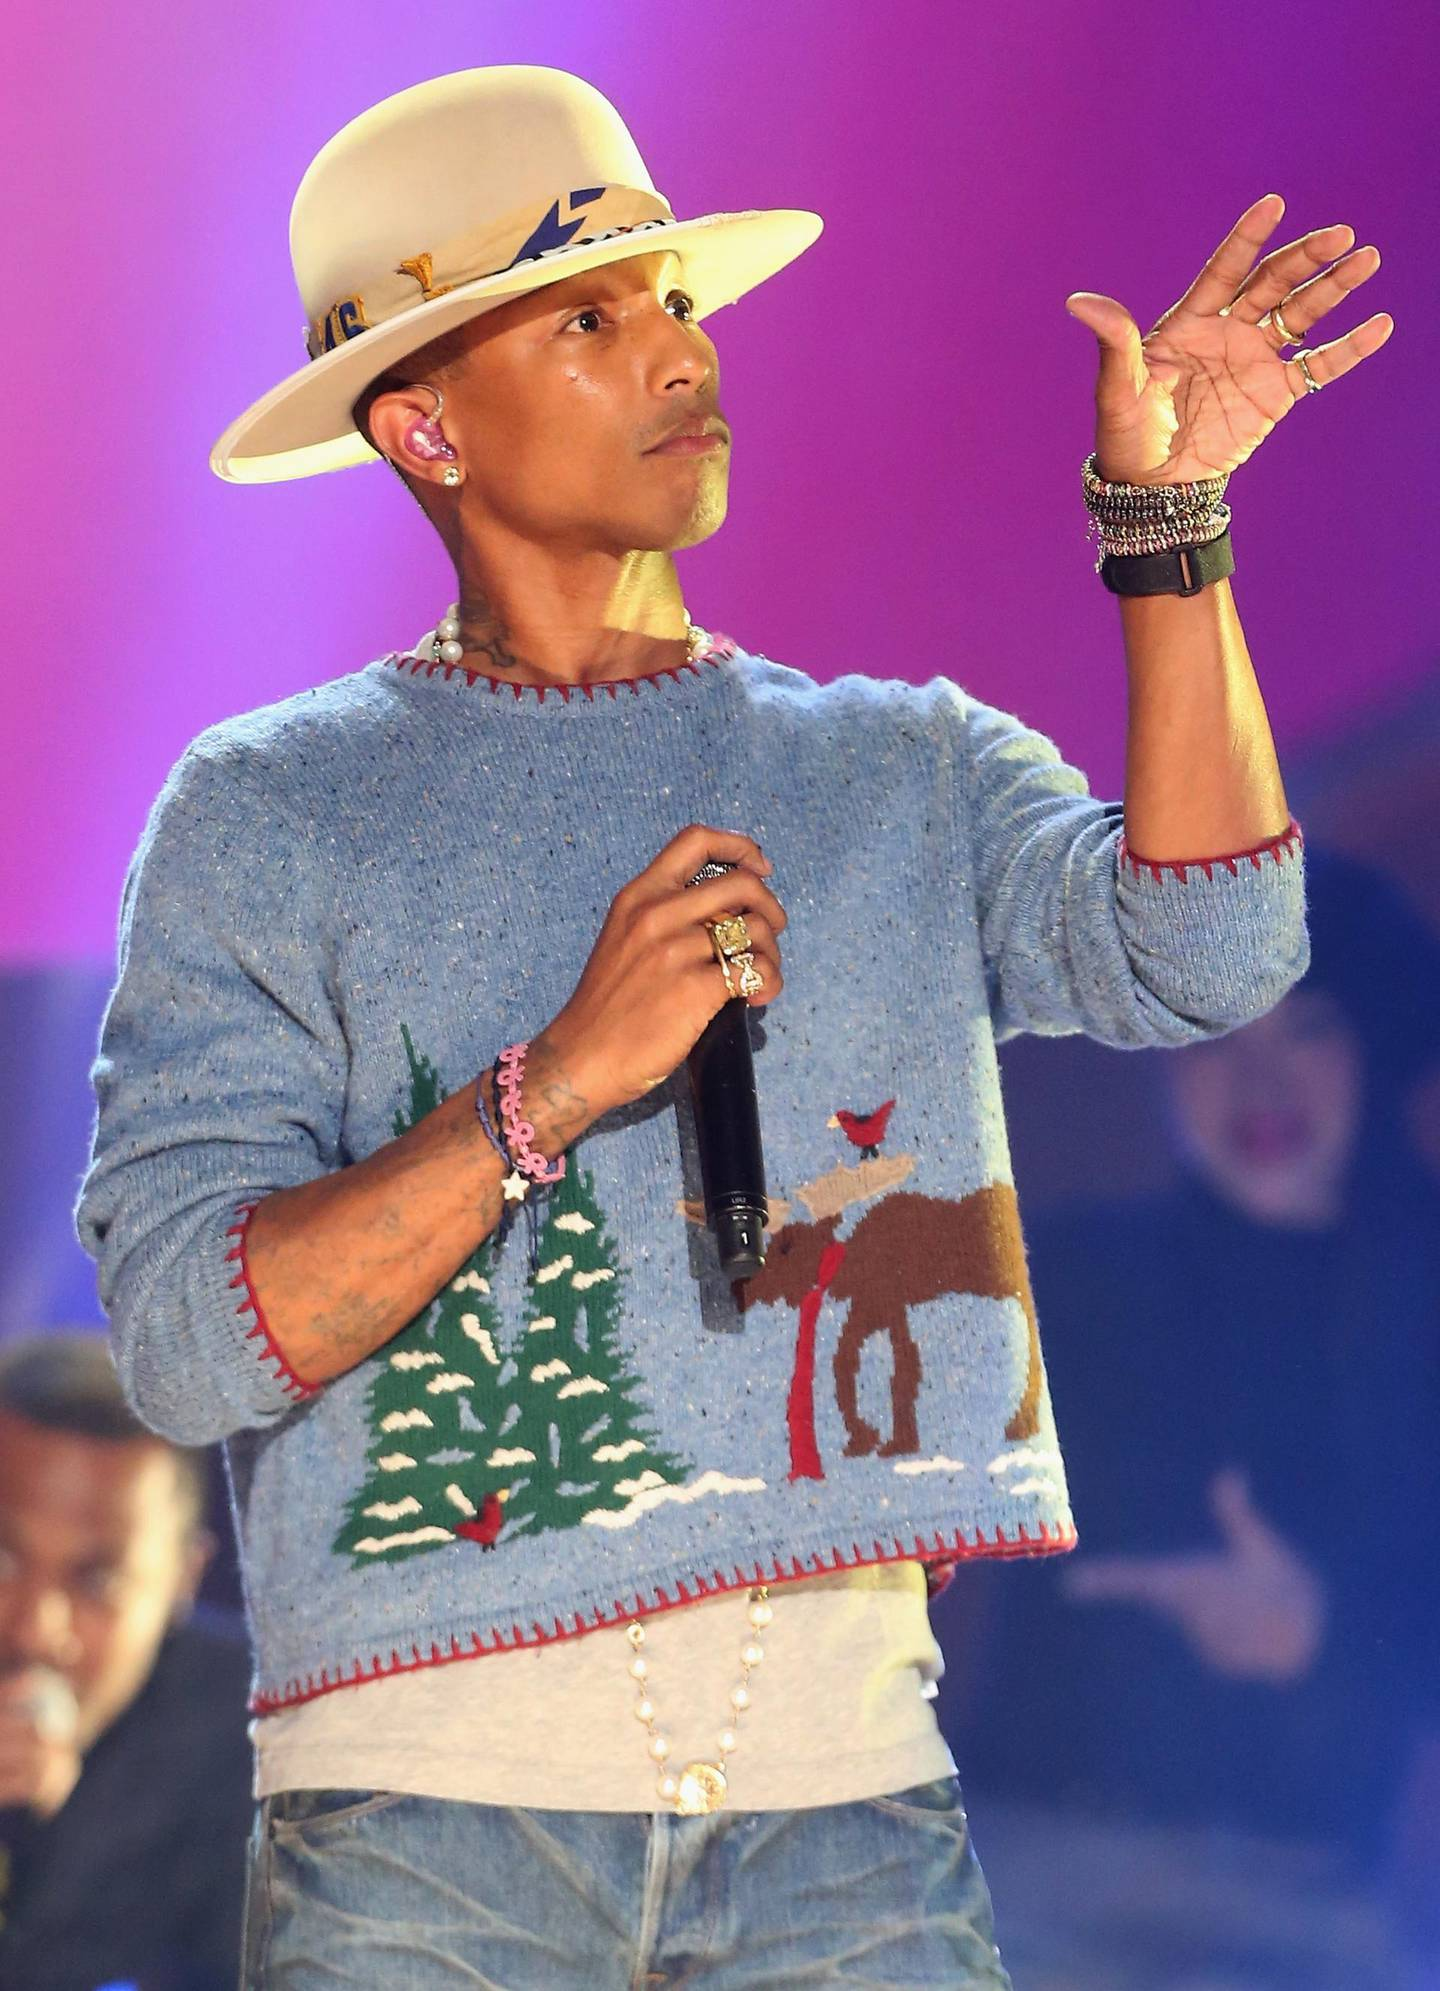 LOS ANGELES, CA - NOVEMBER 18:  Musician Pharrell Williams performs onstage during A VERY GRAMMY CHRISTMAS at The Shrine Auditorium on November 18, 2014 in Los Angeles, California.  (Photo by Frederick M. Brown/Getty Images)